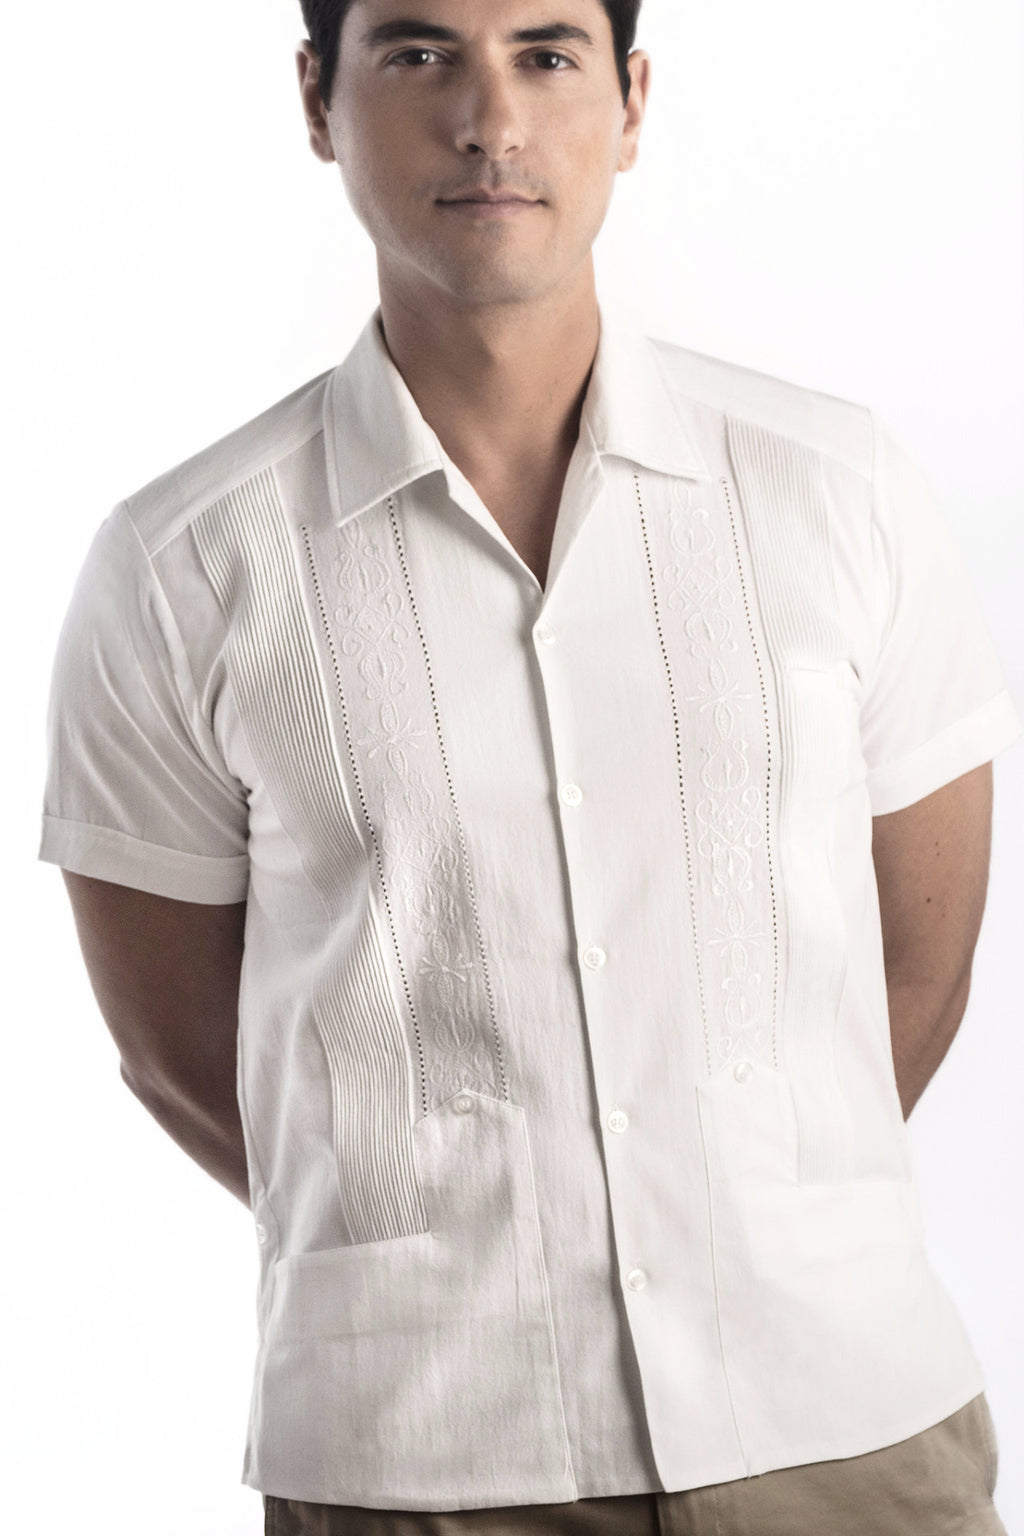 Authentic Huitzilli Guayabera Rejilla 100% Cotton Short Sleeve Made in Yucatán